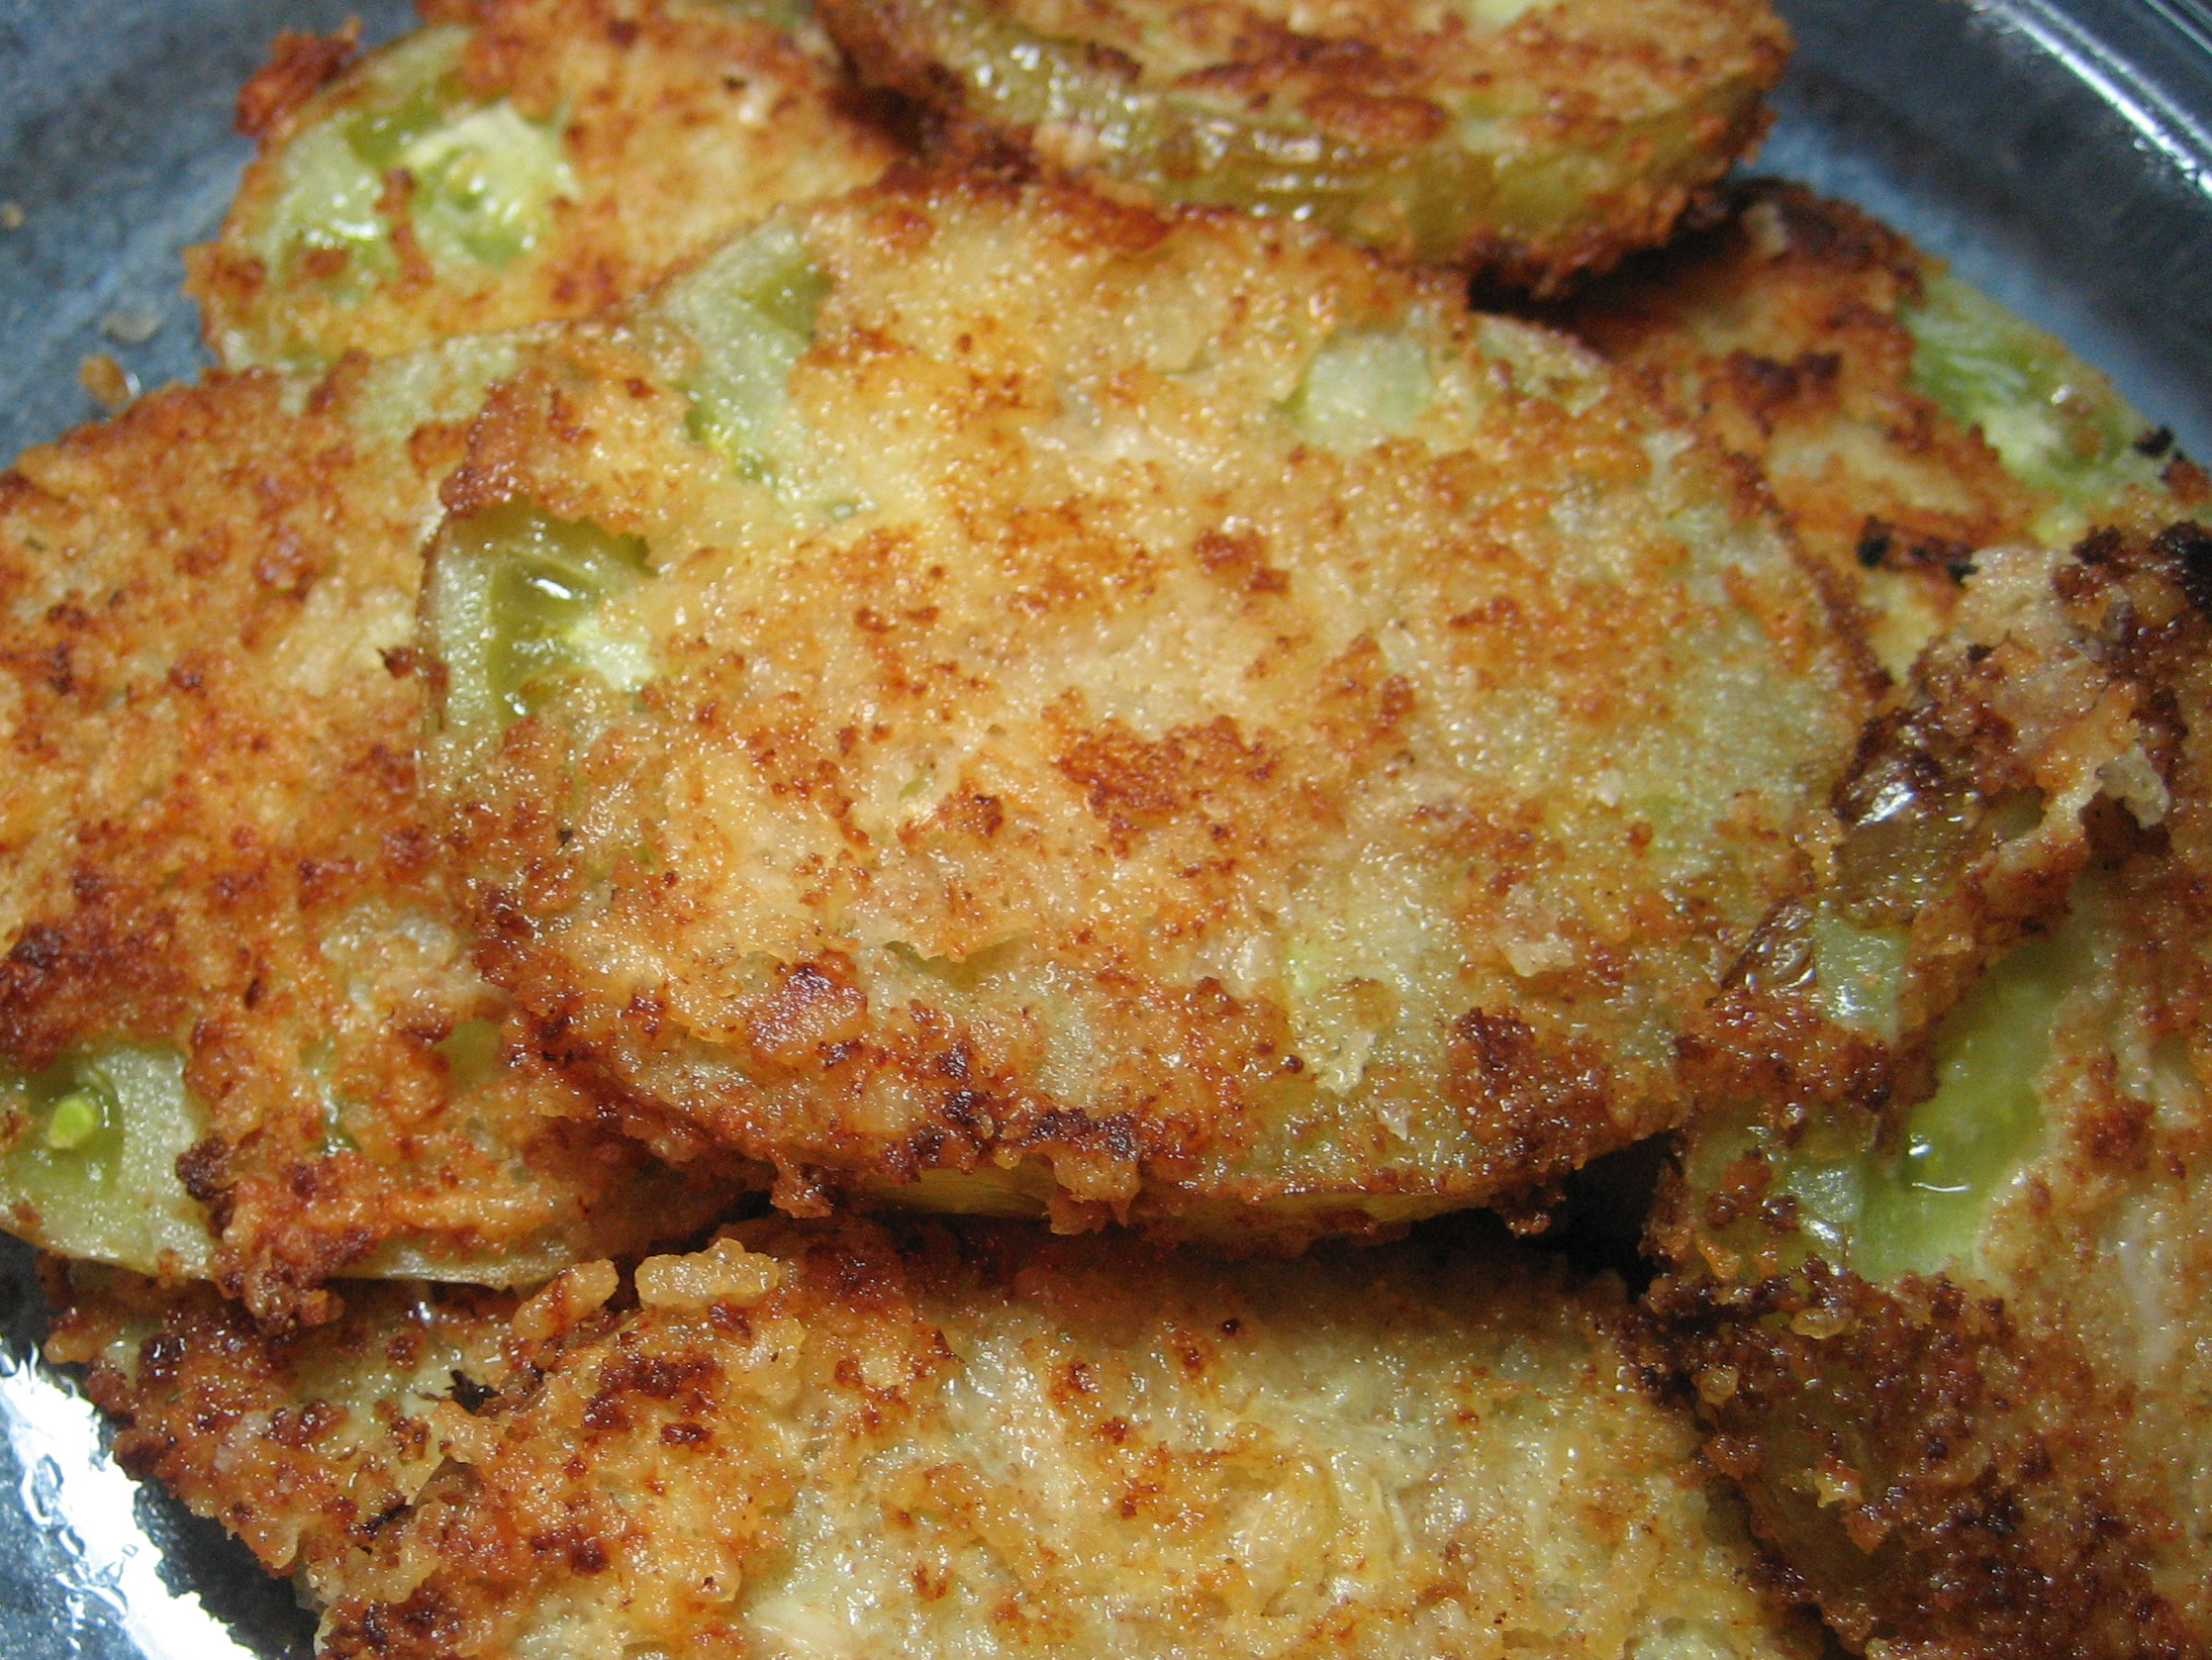 Growing Passion Fried Green Tomatoes - A Growing Passion